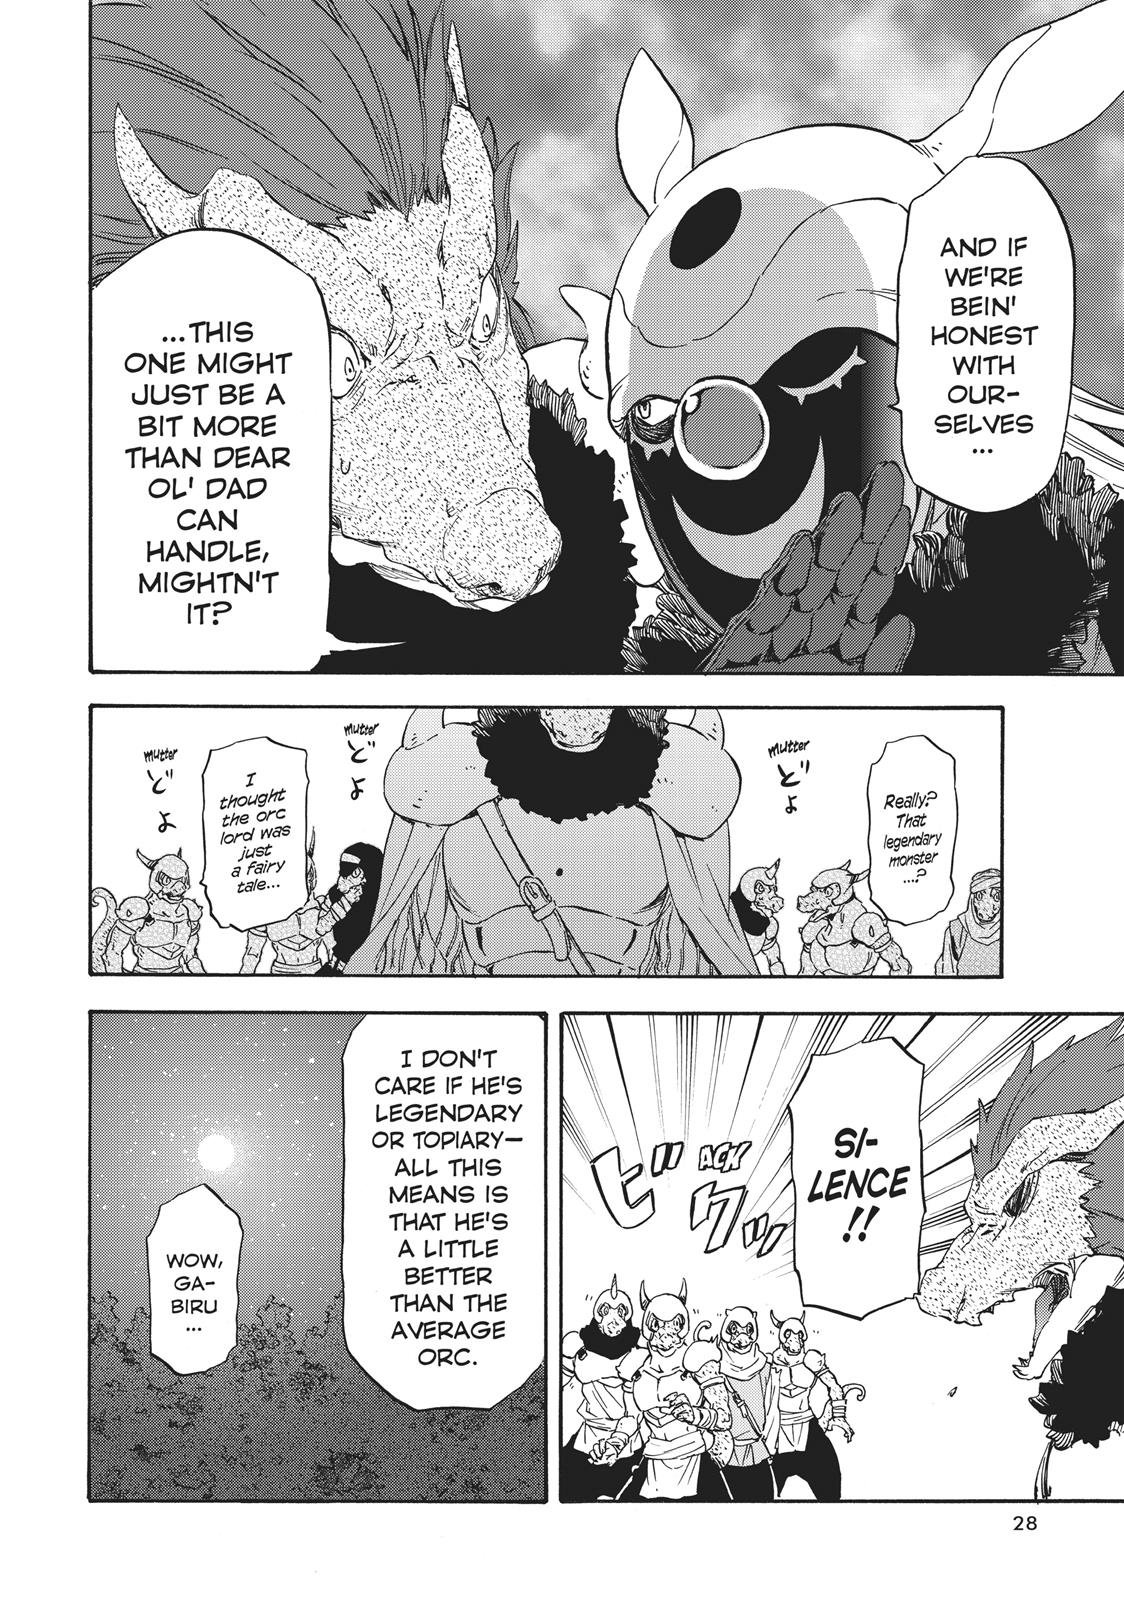 That Time I Got Reincarnated As A Slime, Chapter 18 image 028